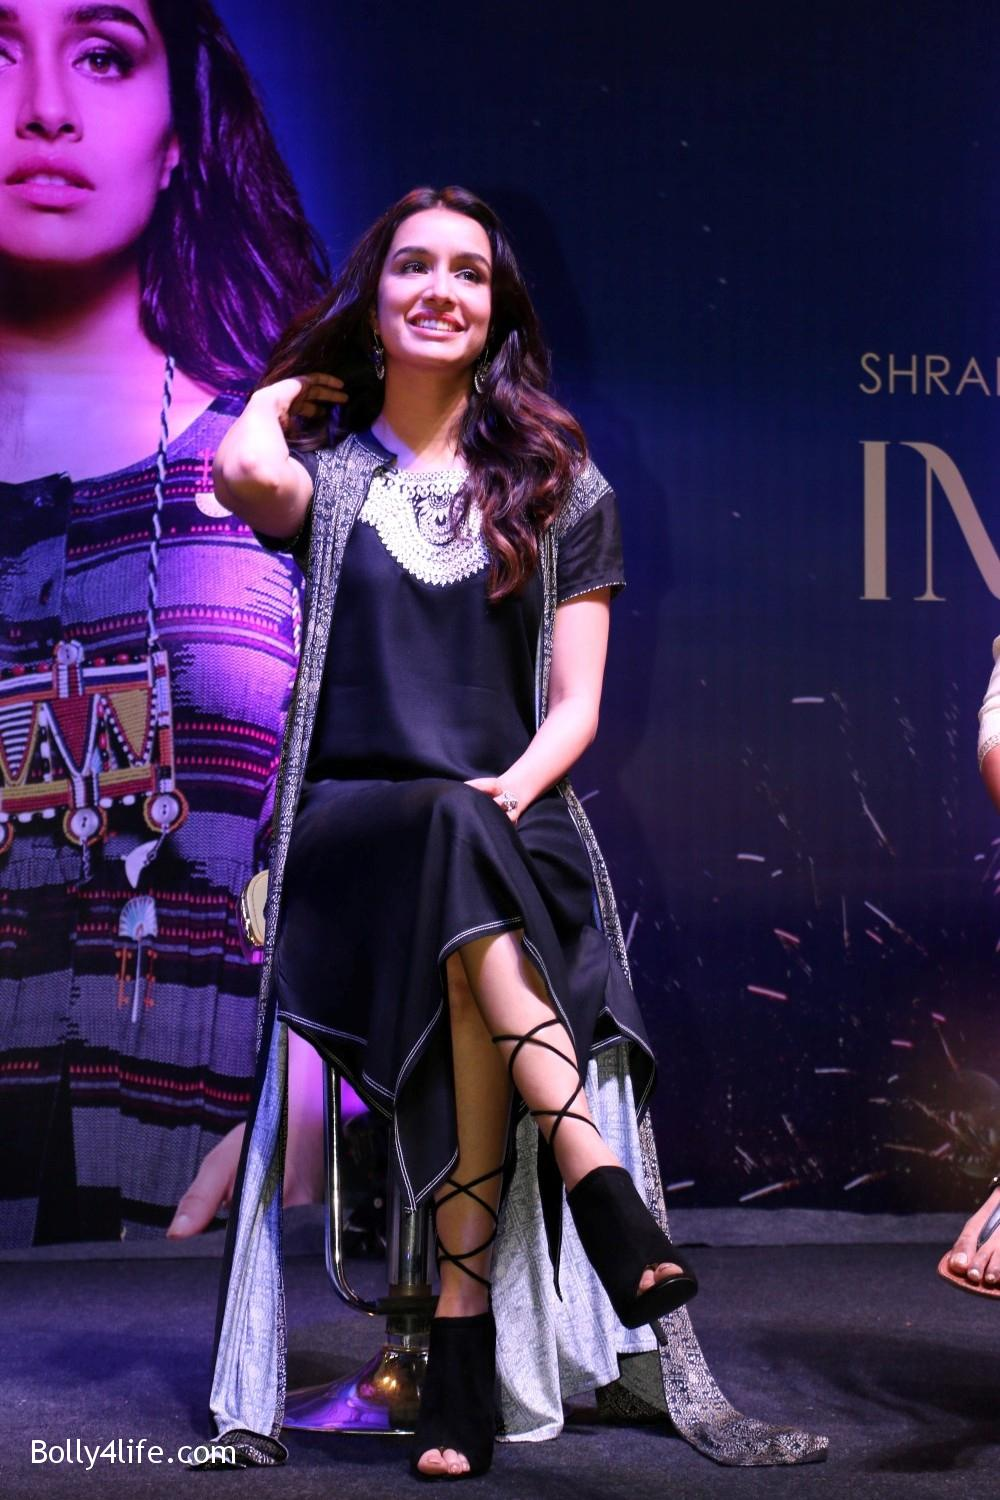 Shraddha-Kapoor-during-the-Enthnic-Wear-store-launch-9.jpg